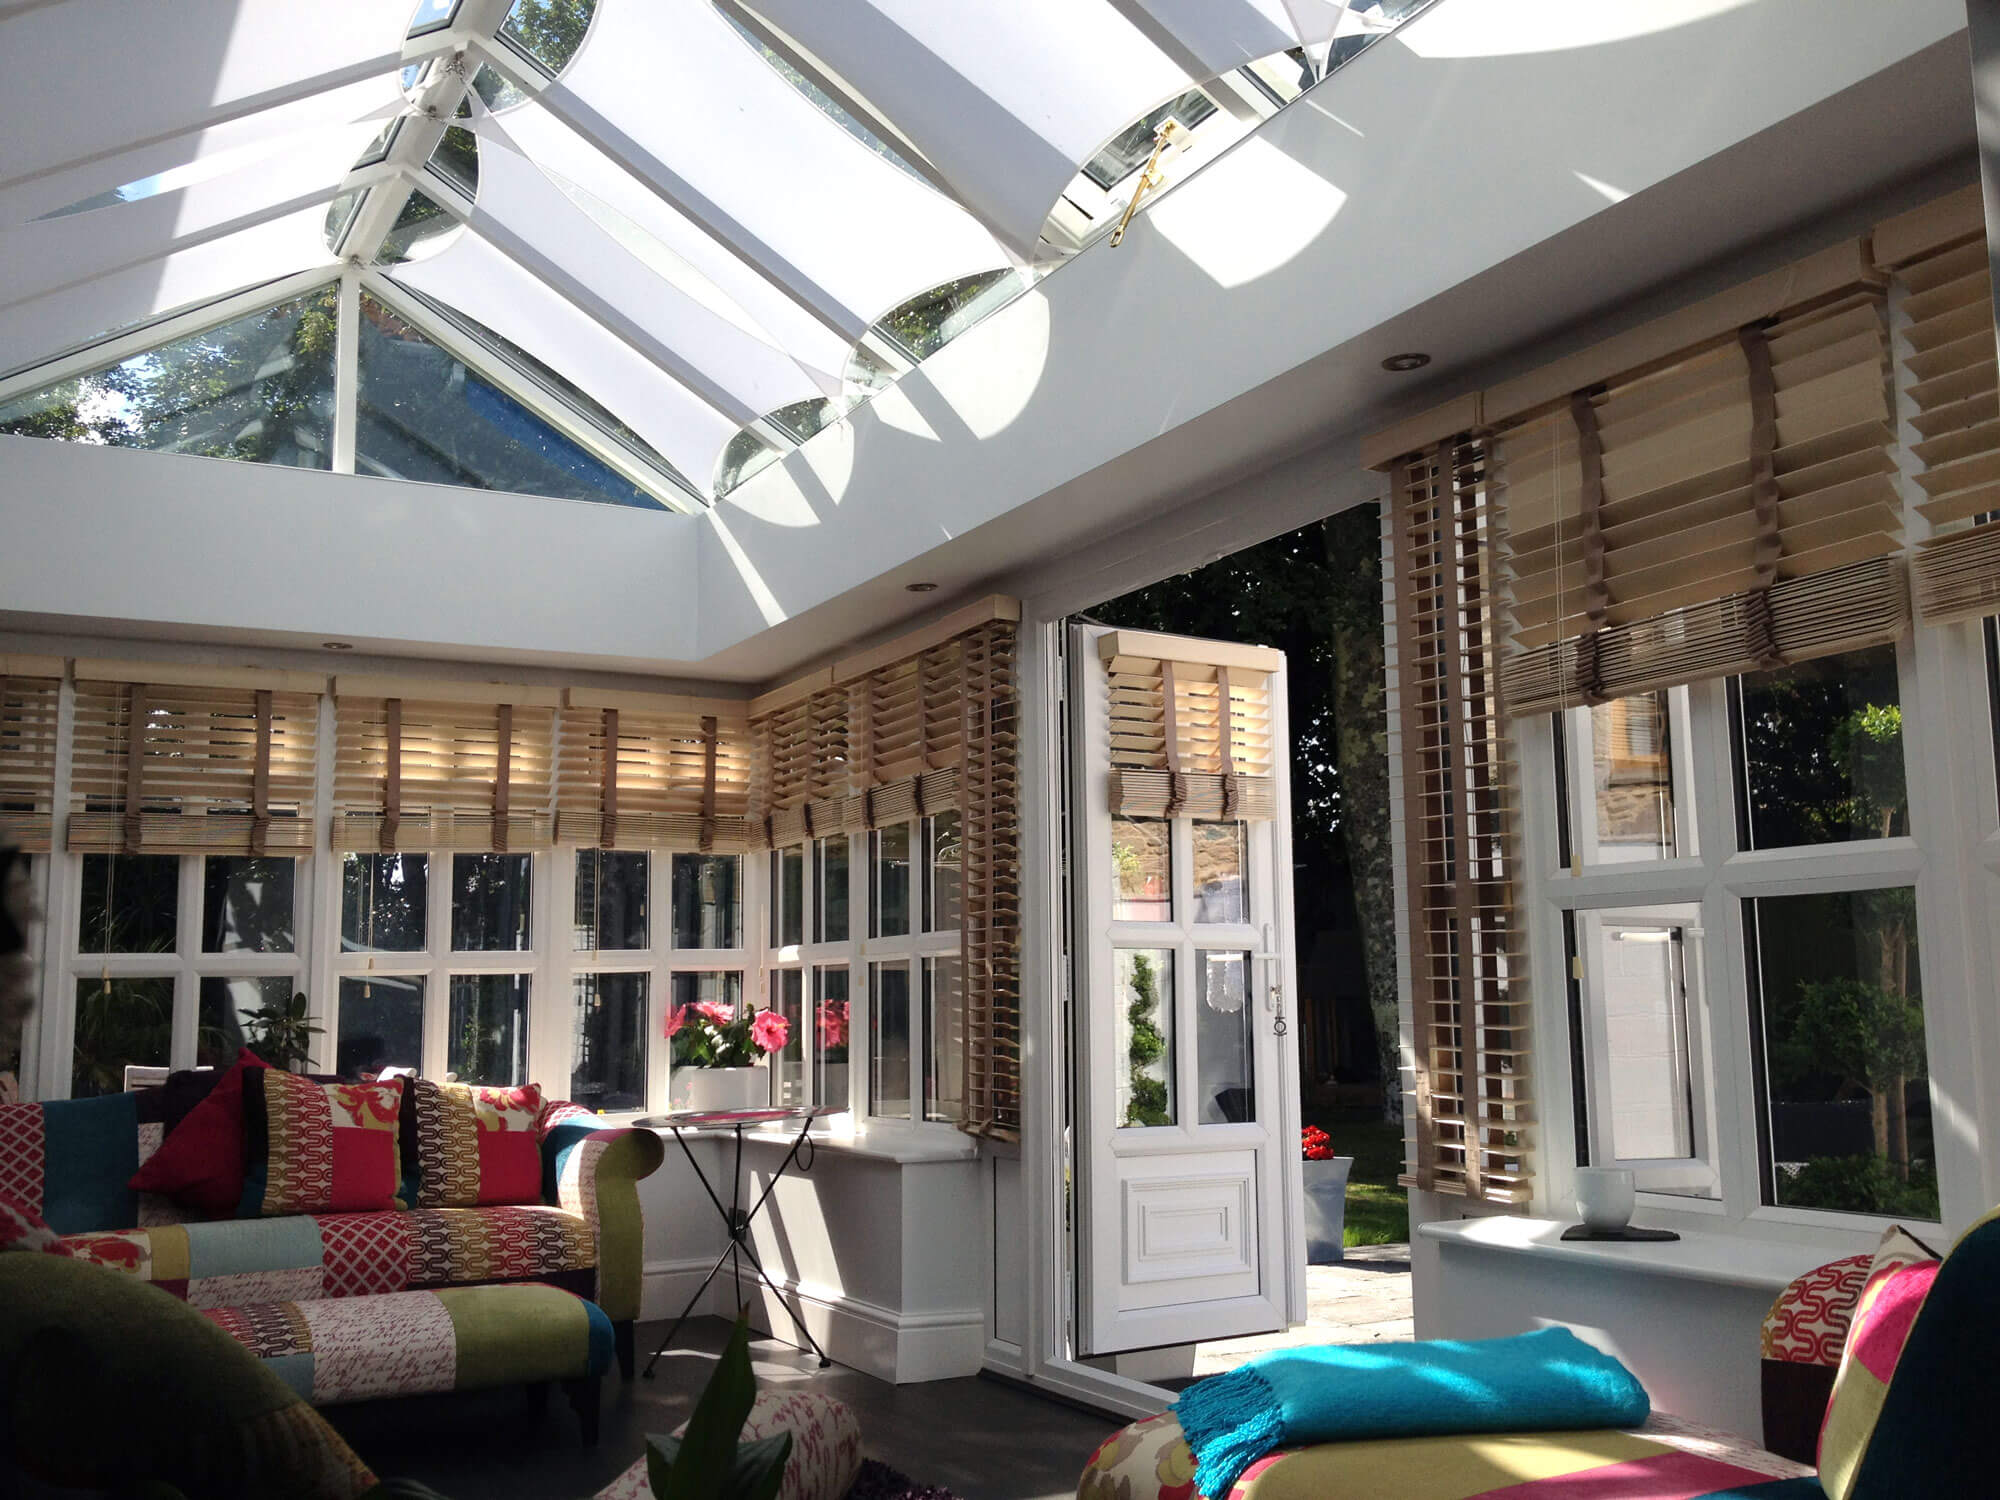 InShade - Simple elegant roof blinds for orangeries